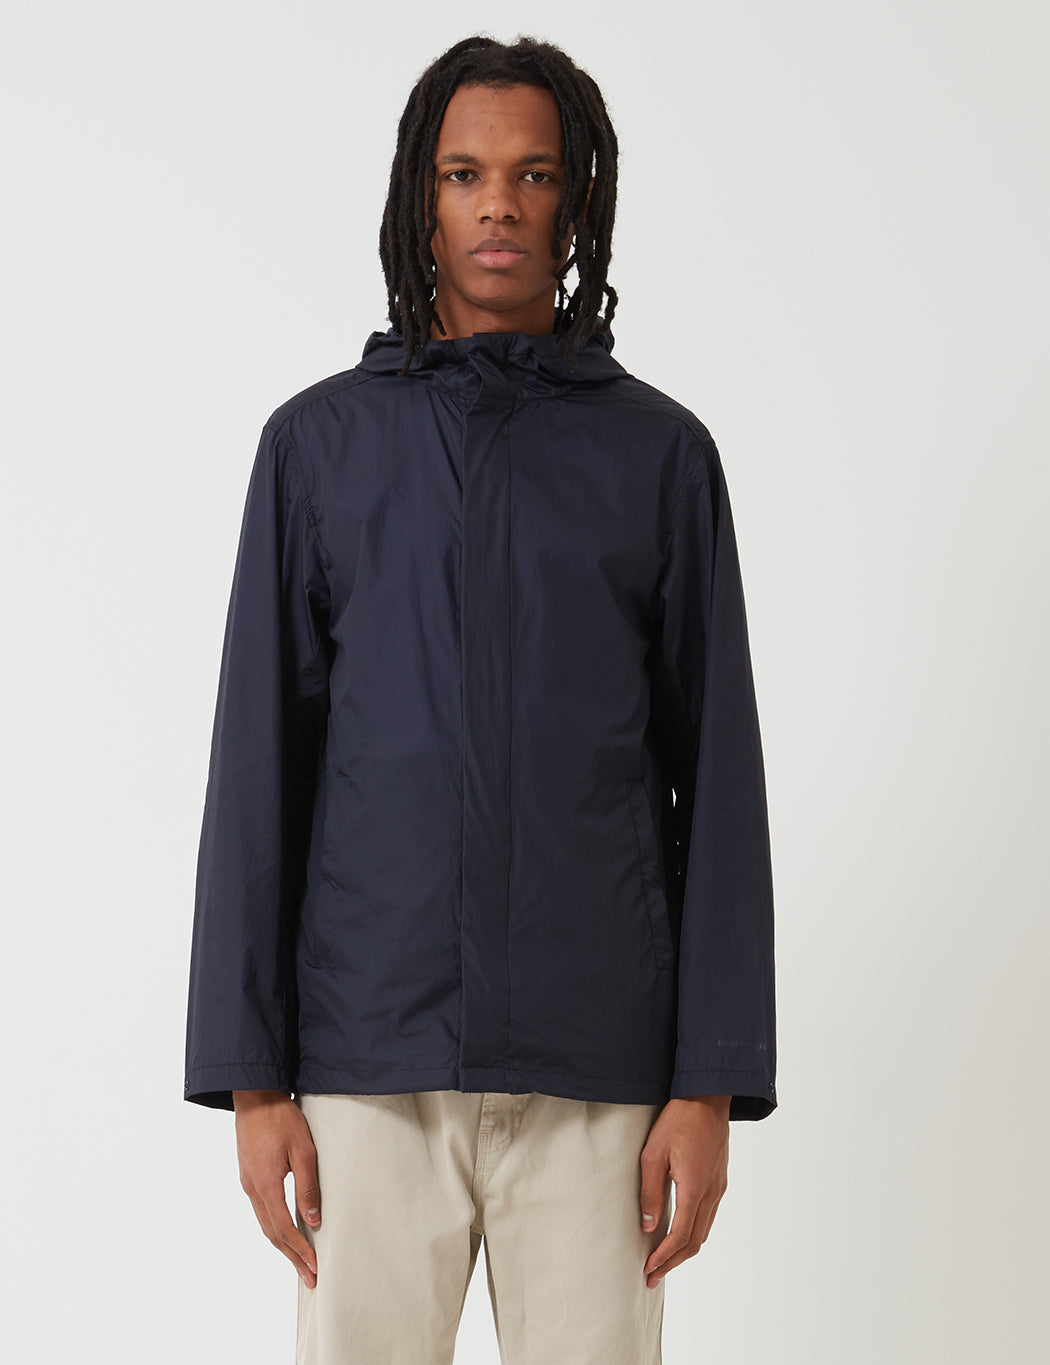 en ny chans unik design specialavsnitt Norse Projects Kalmar Light Rain Jacket - Navy Blue | URBAN EXCESS.